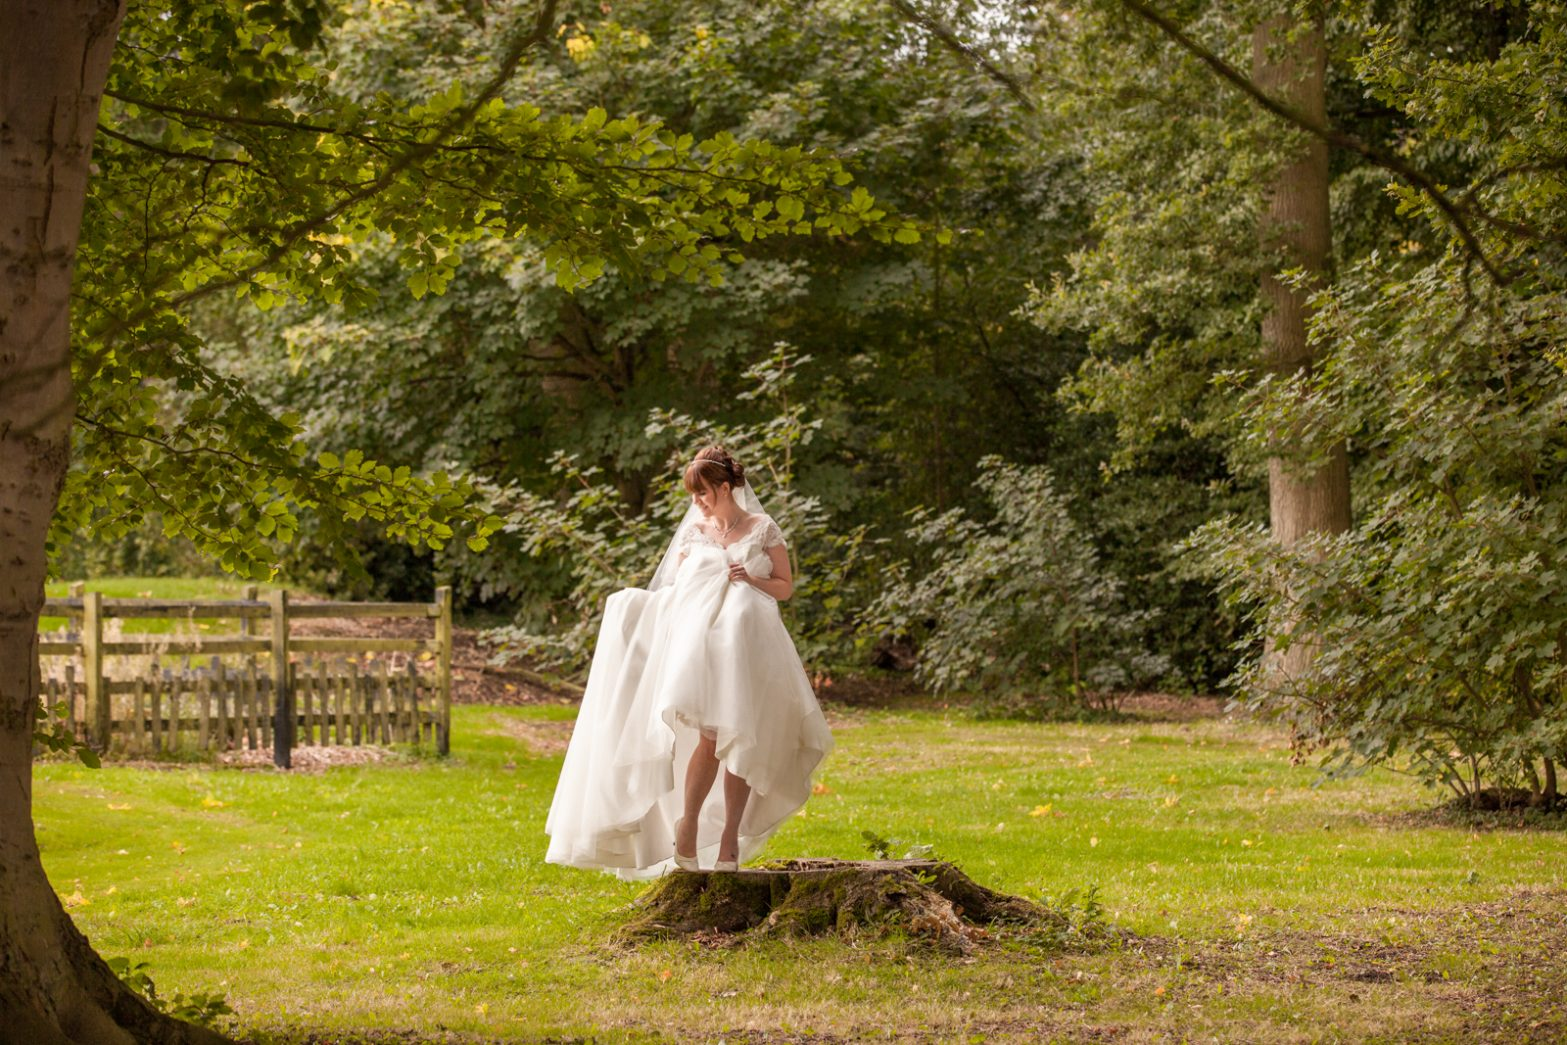 Gallery of Wedding images in East Yorkshire, North ...